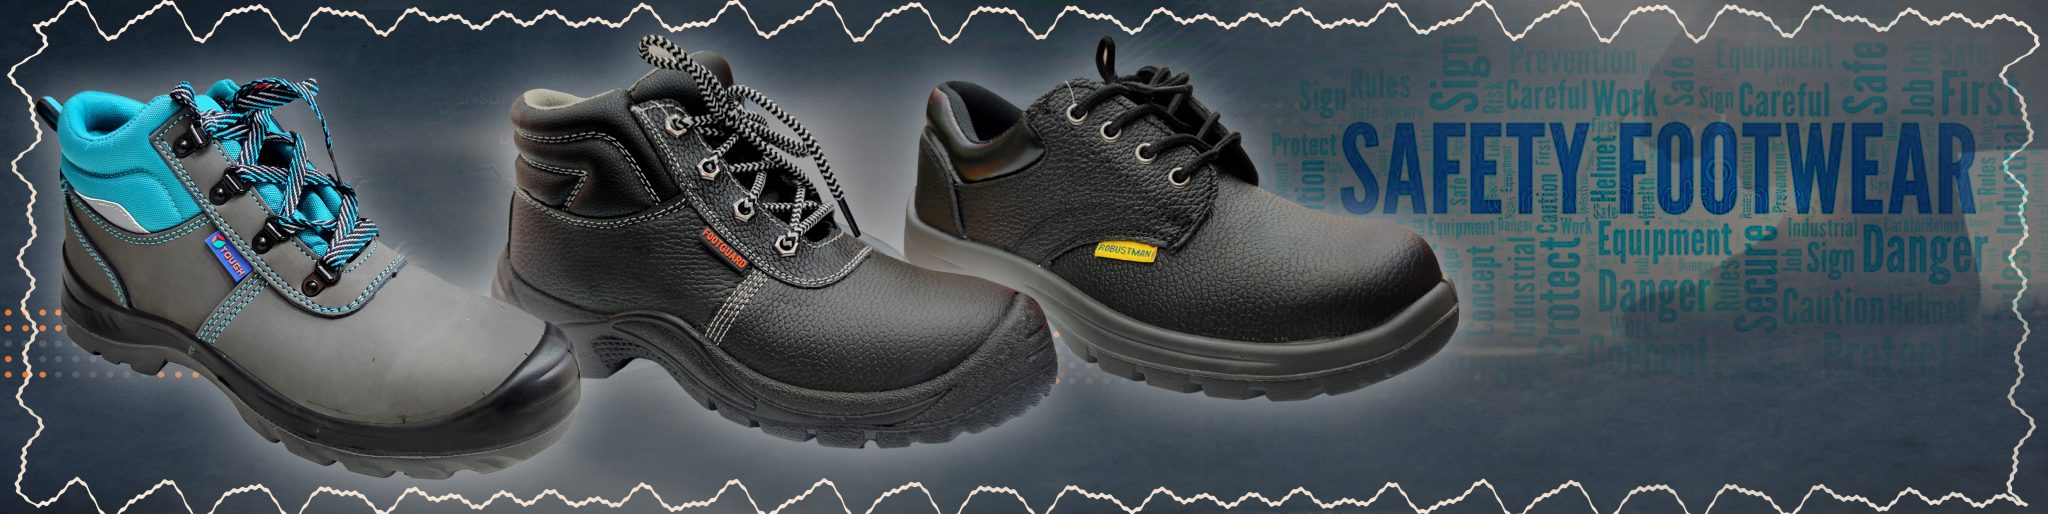 shoes-Banner-New-scaled